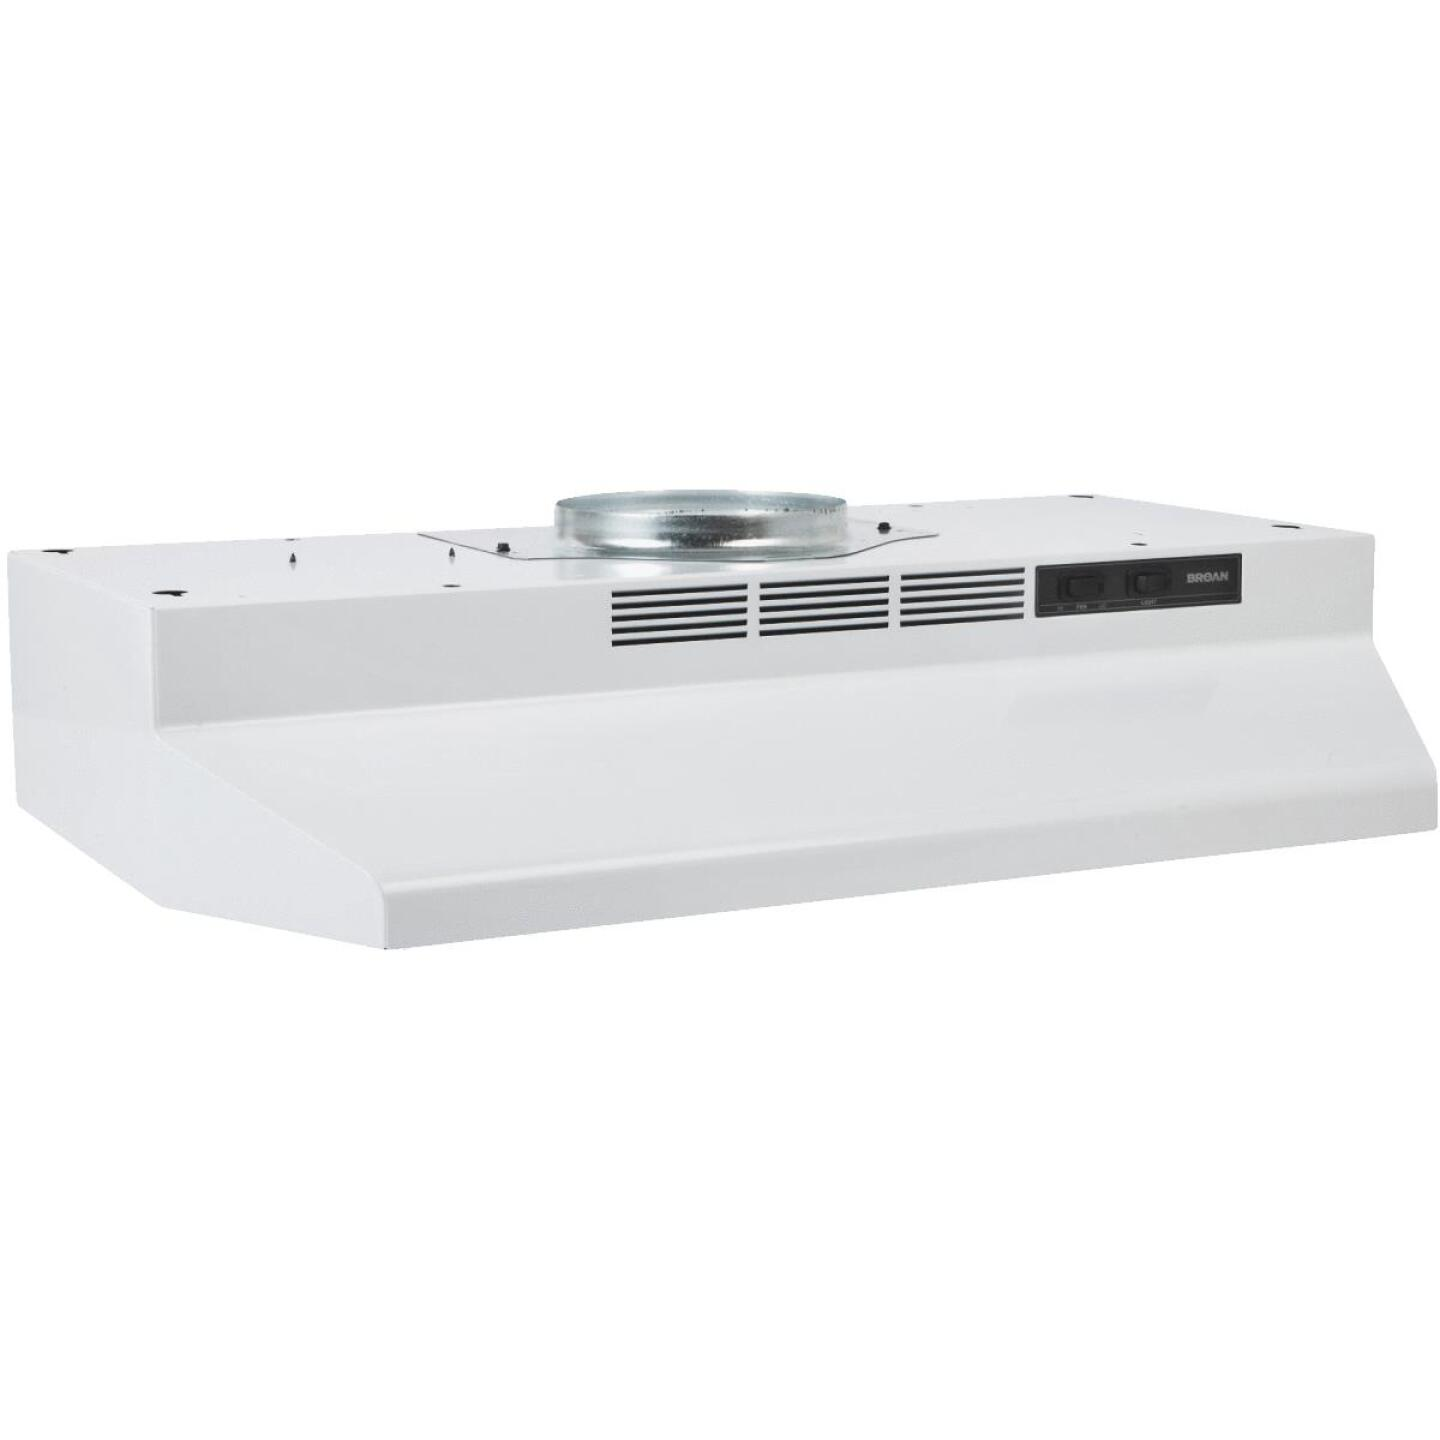 Broan-Nutone F Series 30 In. Convertible White Range Hood Image 1